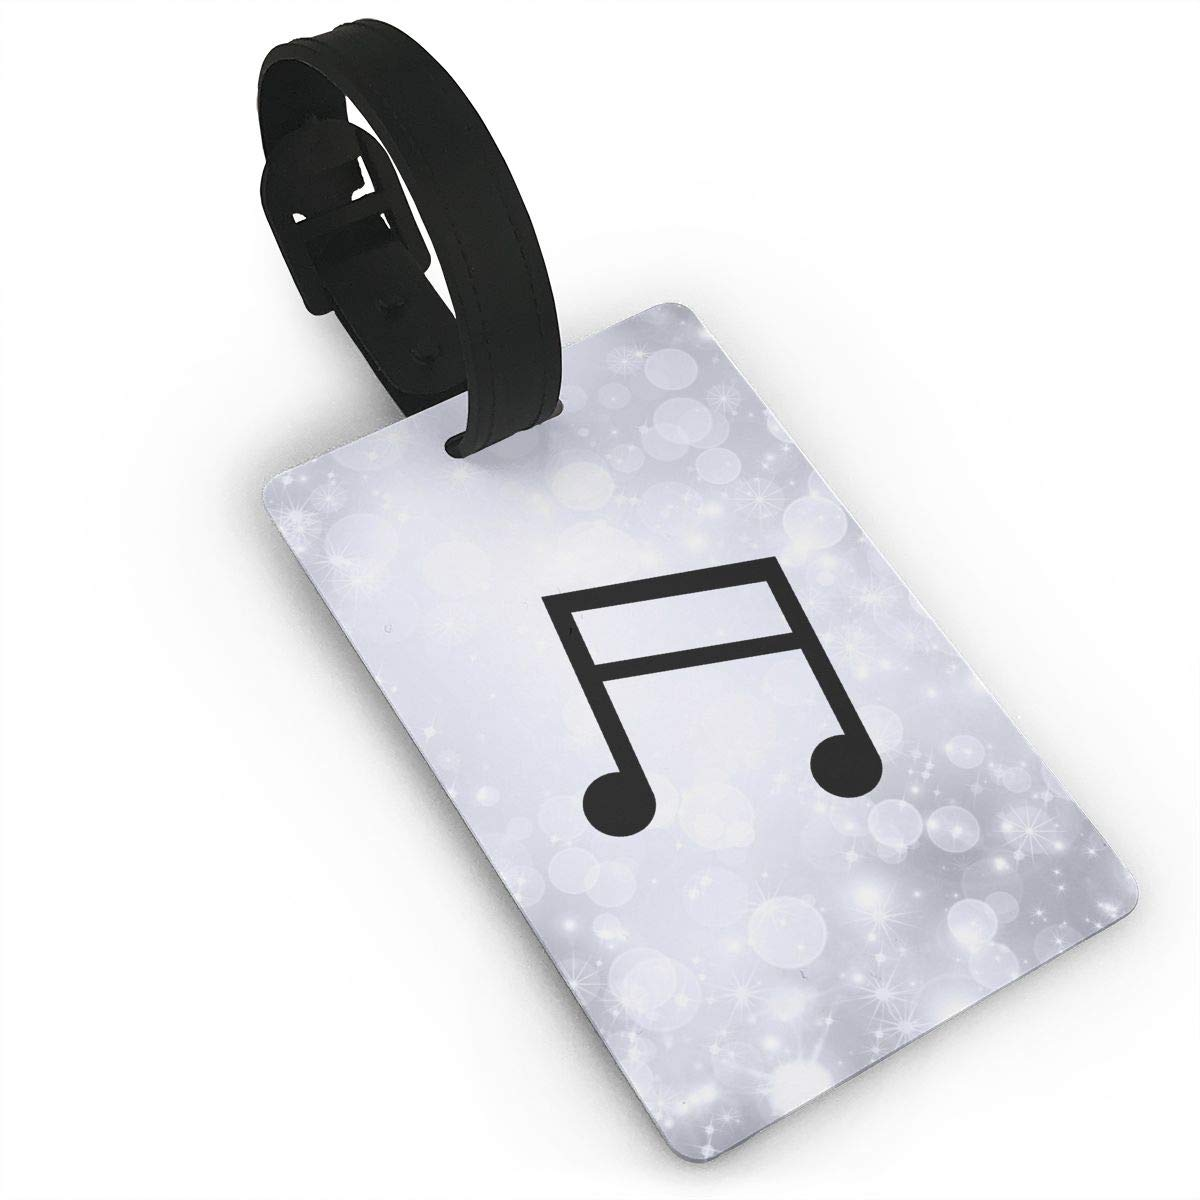 Music Note Baggage Tag For Travel Bag Suitcase Accessories 2 Pack Luggage Tags